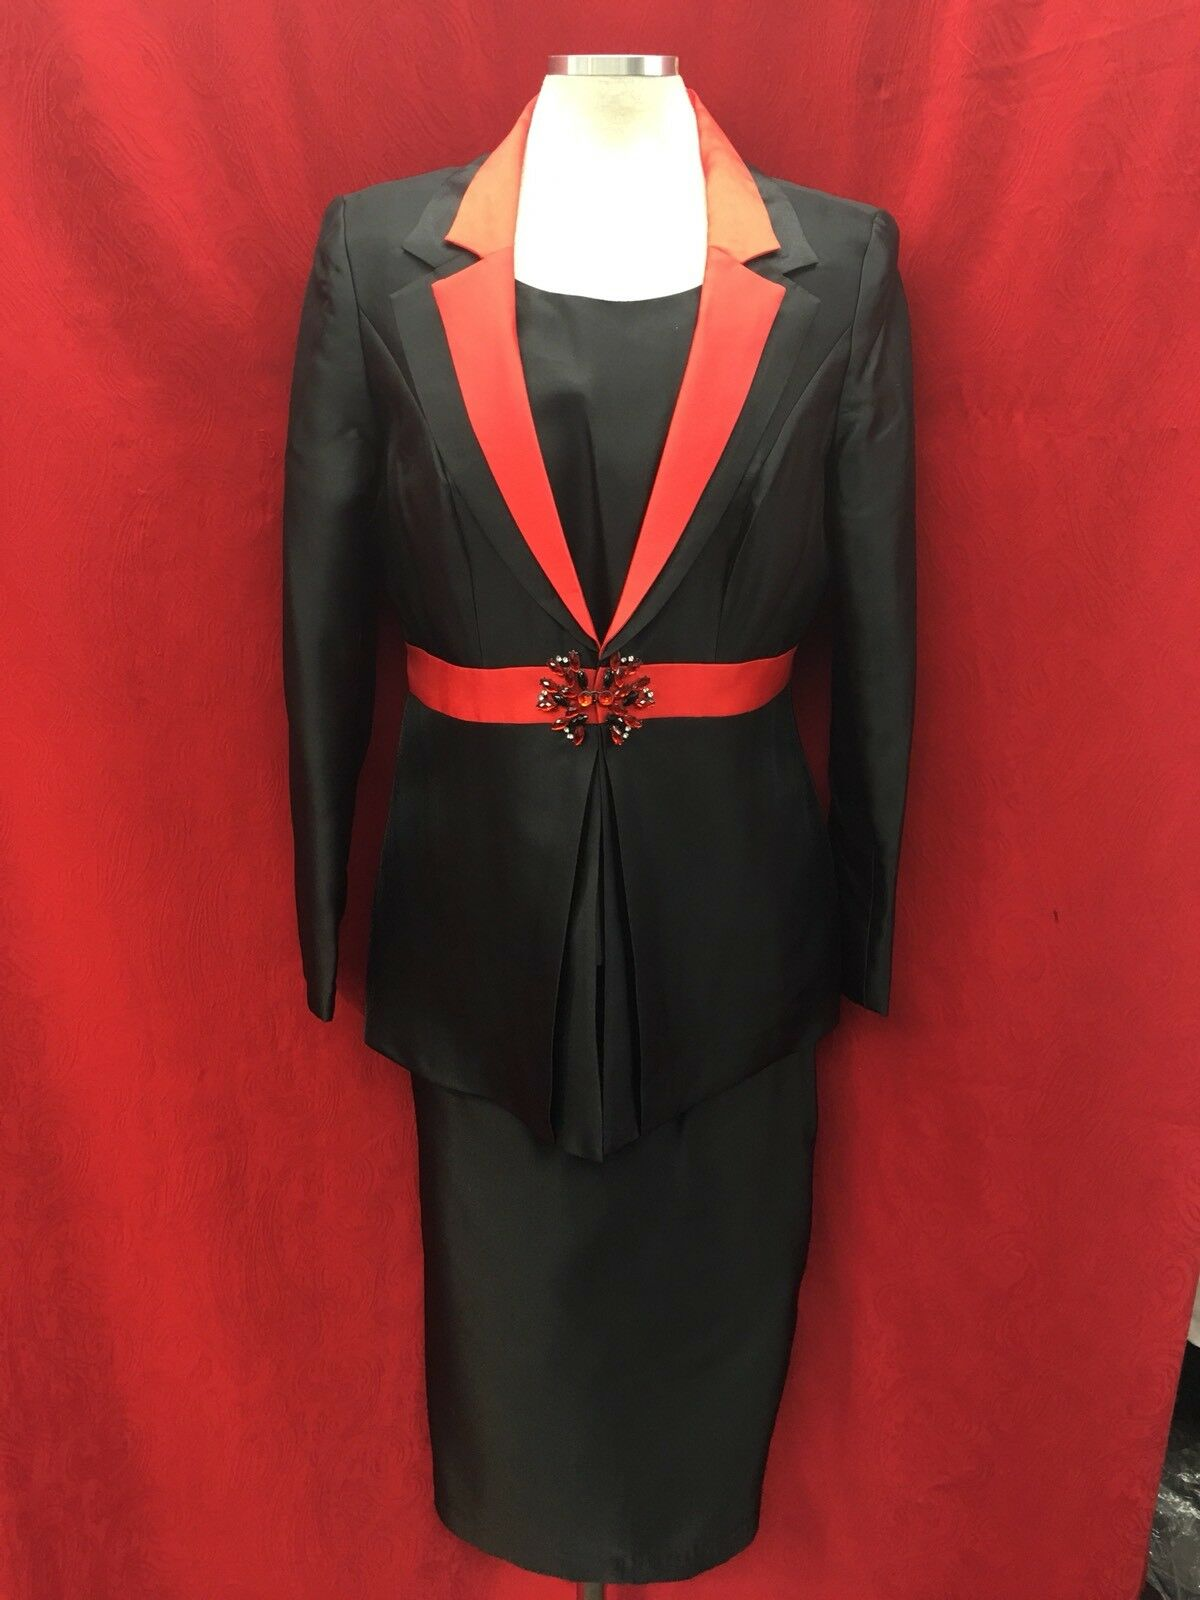 TALLY TAYLOR SKIRT SUIT. SKIRT LENGTH 32  LINED SIZE 16W NEW WITH TAG RETAIL 229